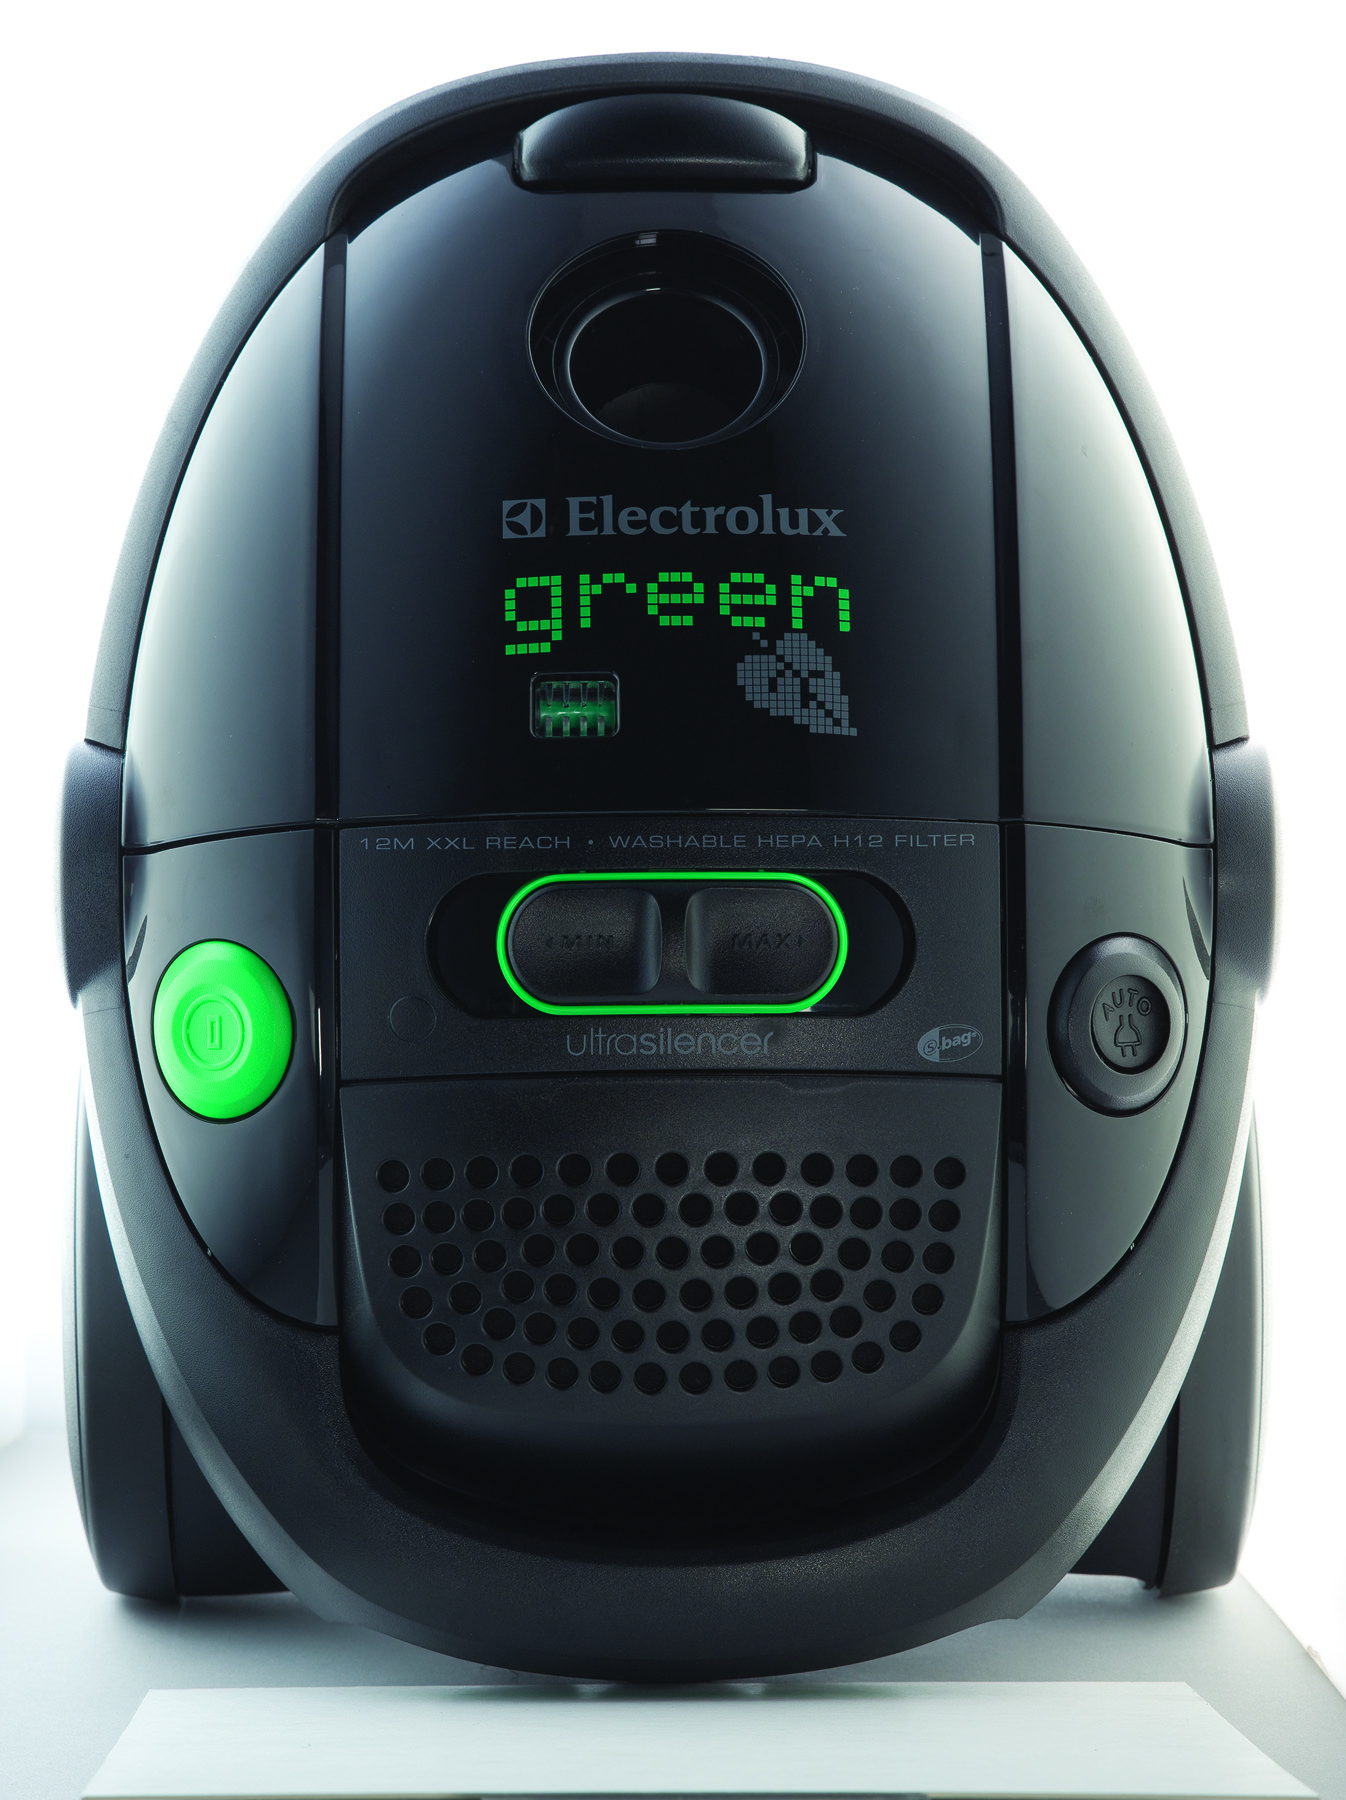 Black Is The New Green Recycled Plastic Makes Electrolux